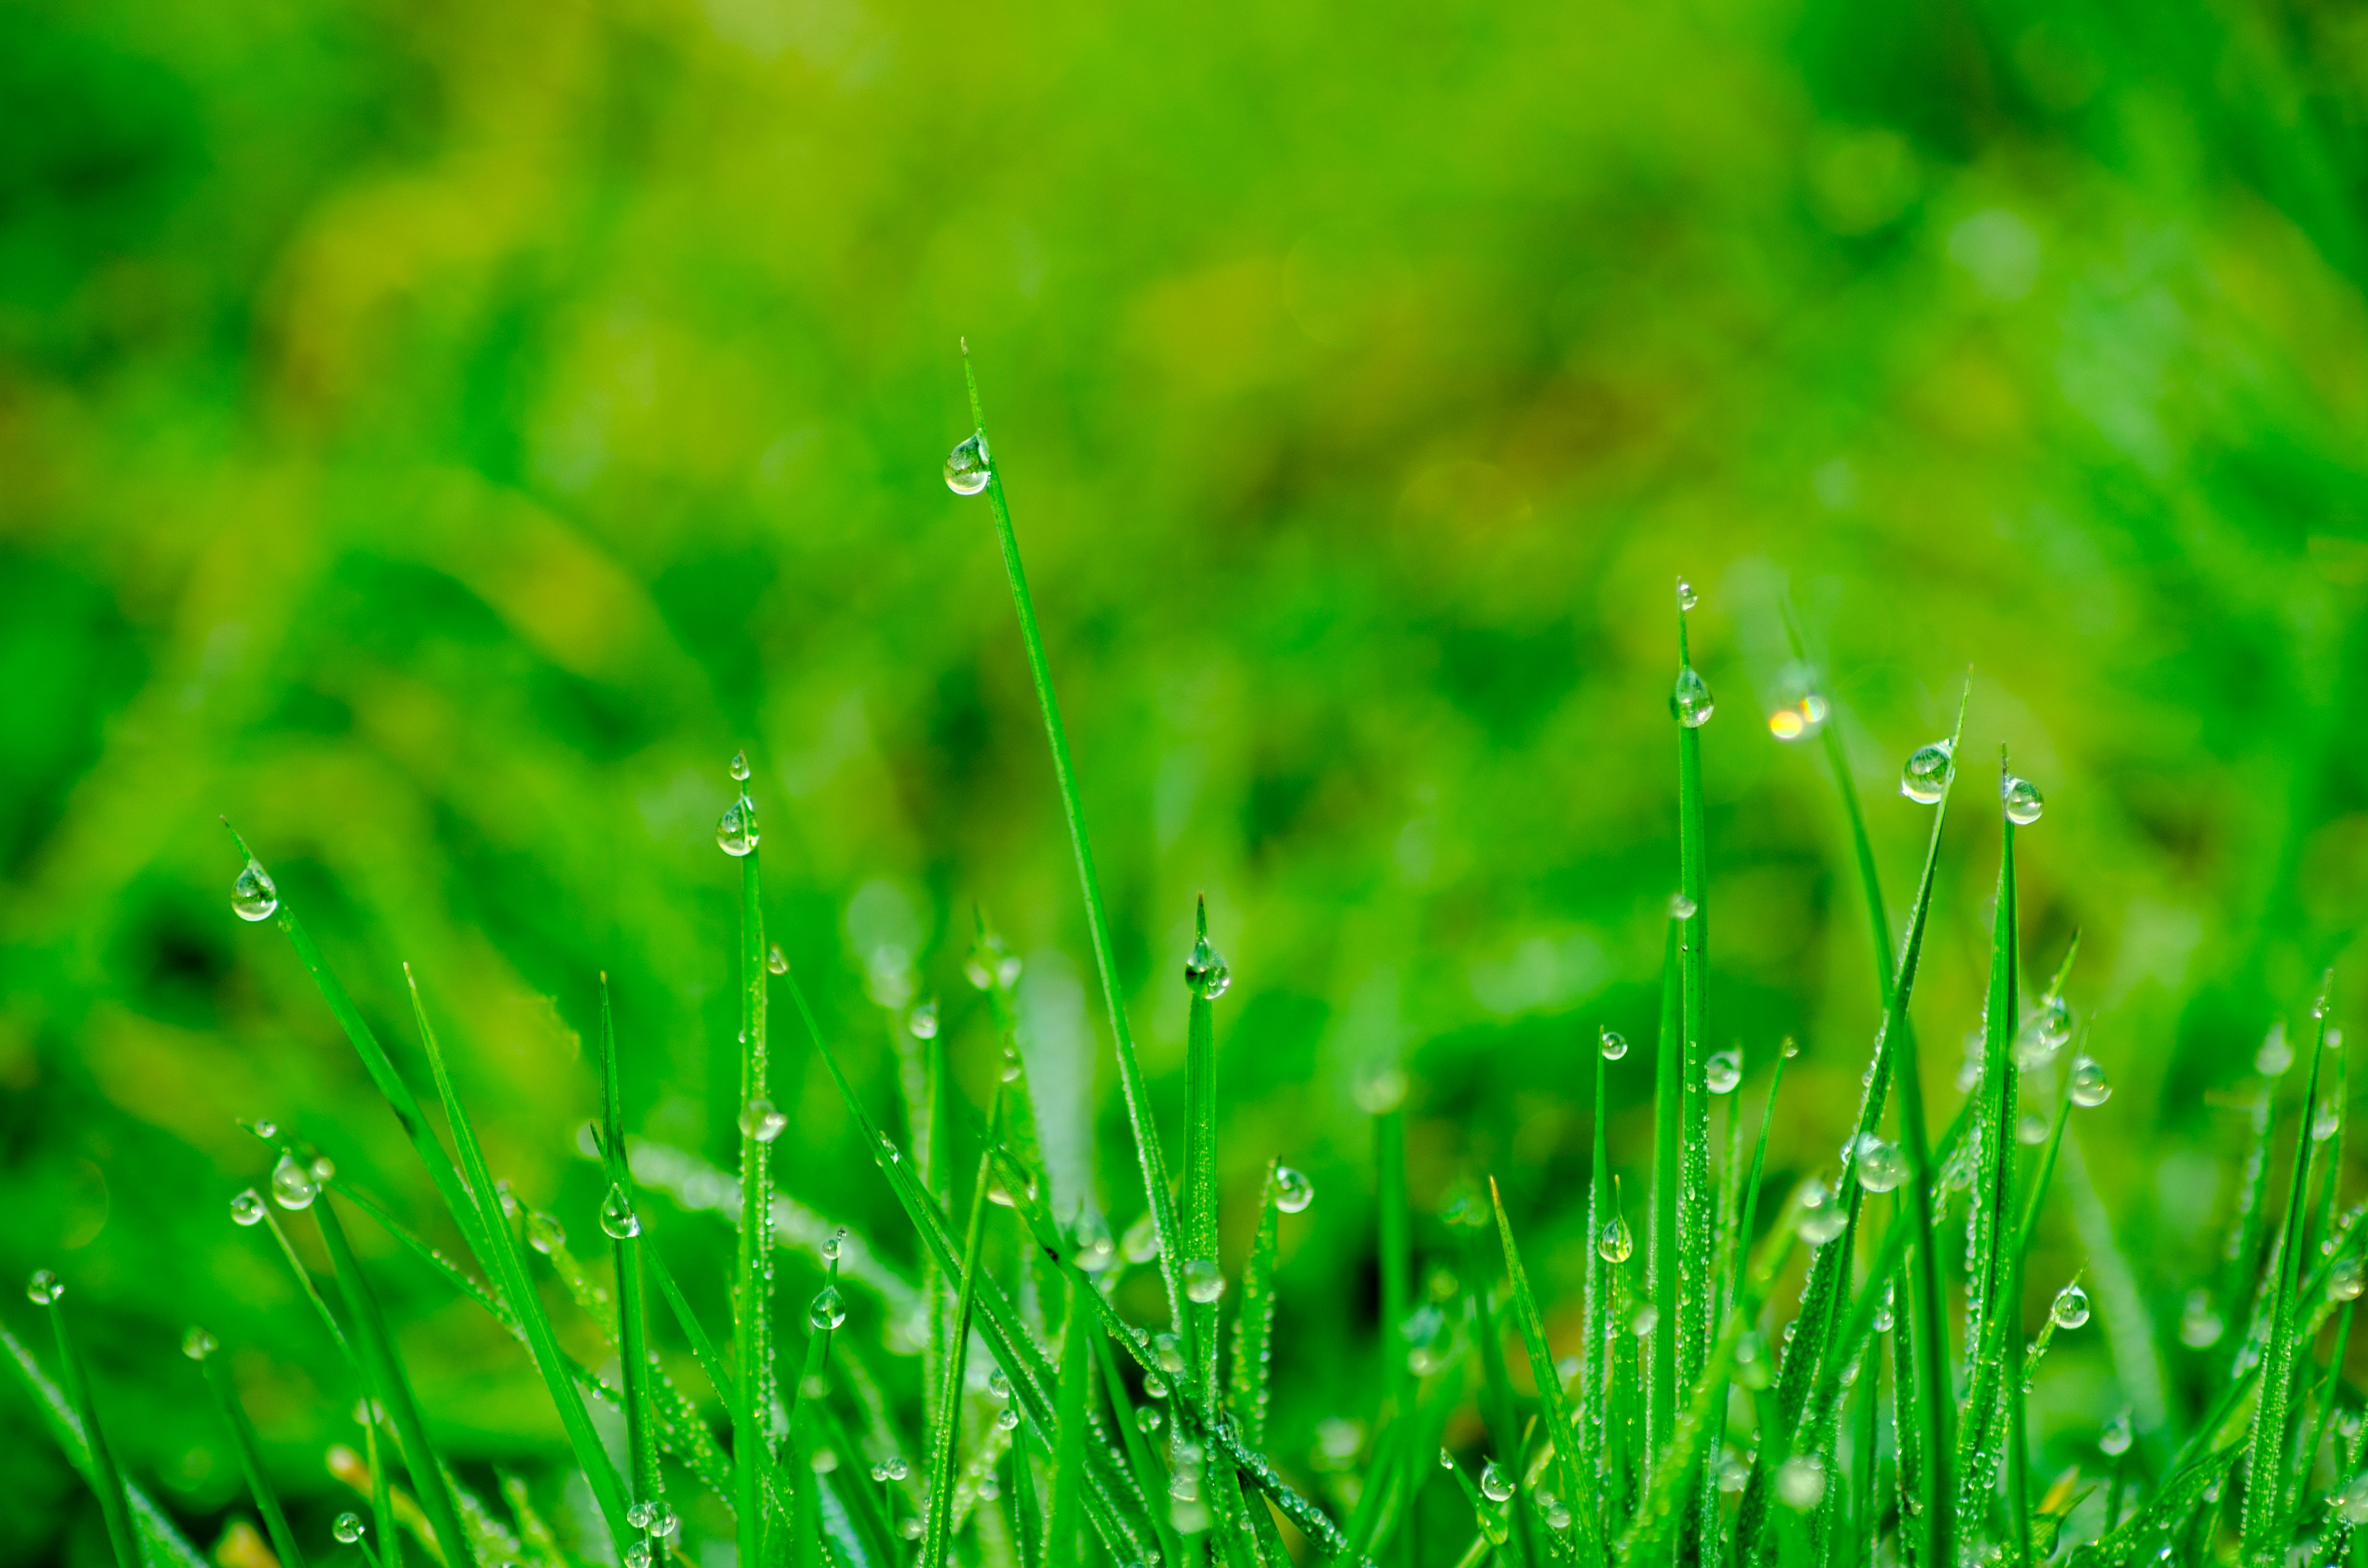 Free stock photos of grass background pexels free stock photo of nature water summer garden sciox Choice Image